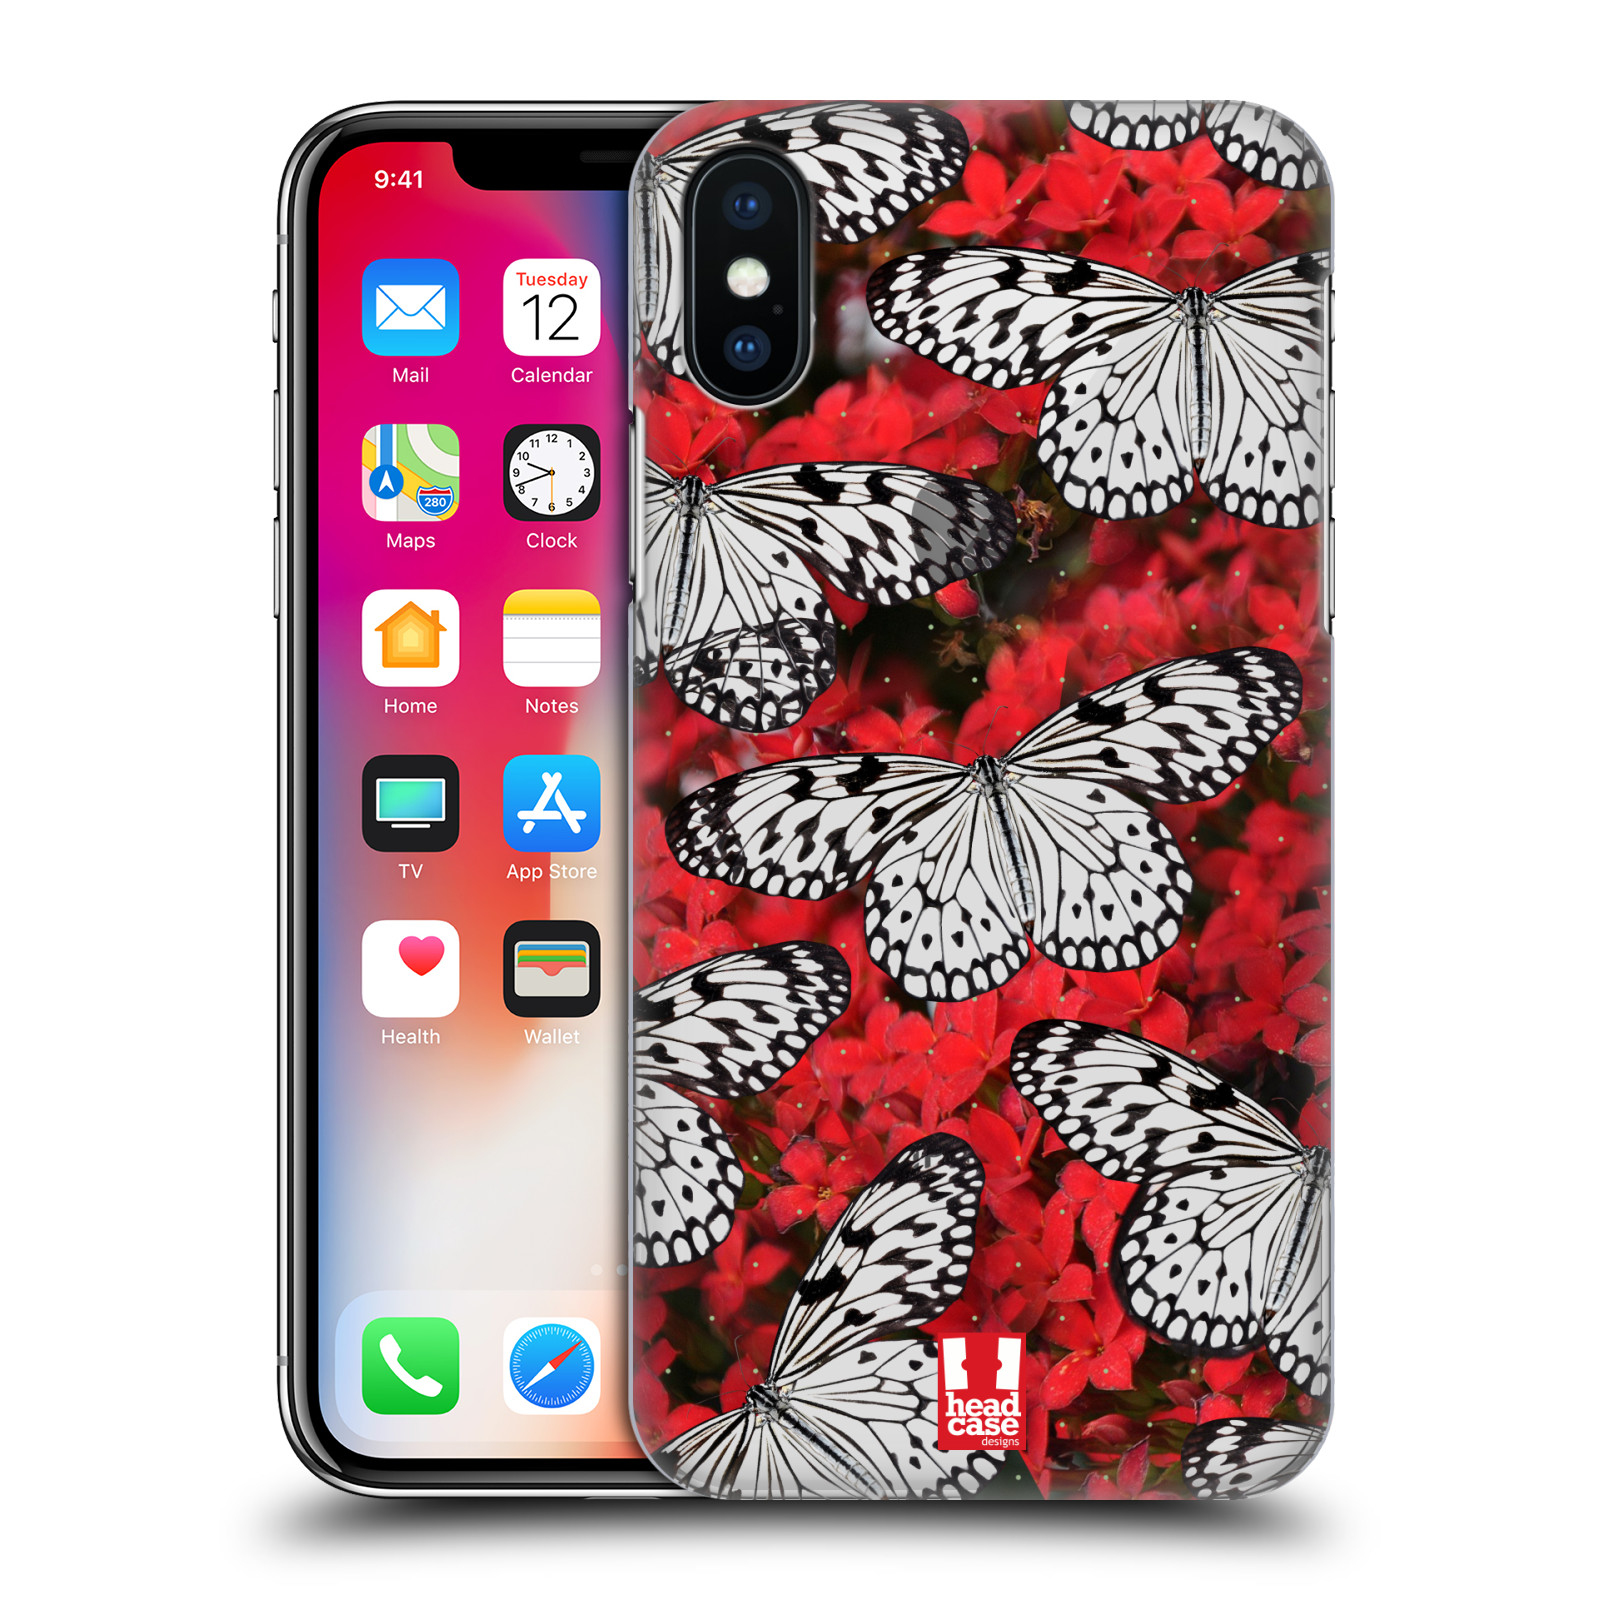 Funda-HEAD-CASE-DESIGNS-Alas-de-Cristal-Funda-Rigida-posterior-para-telefonos-Apple-iPhone